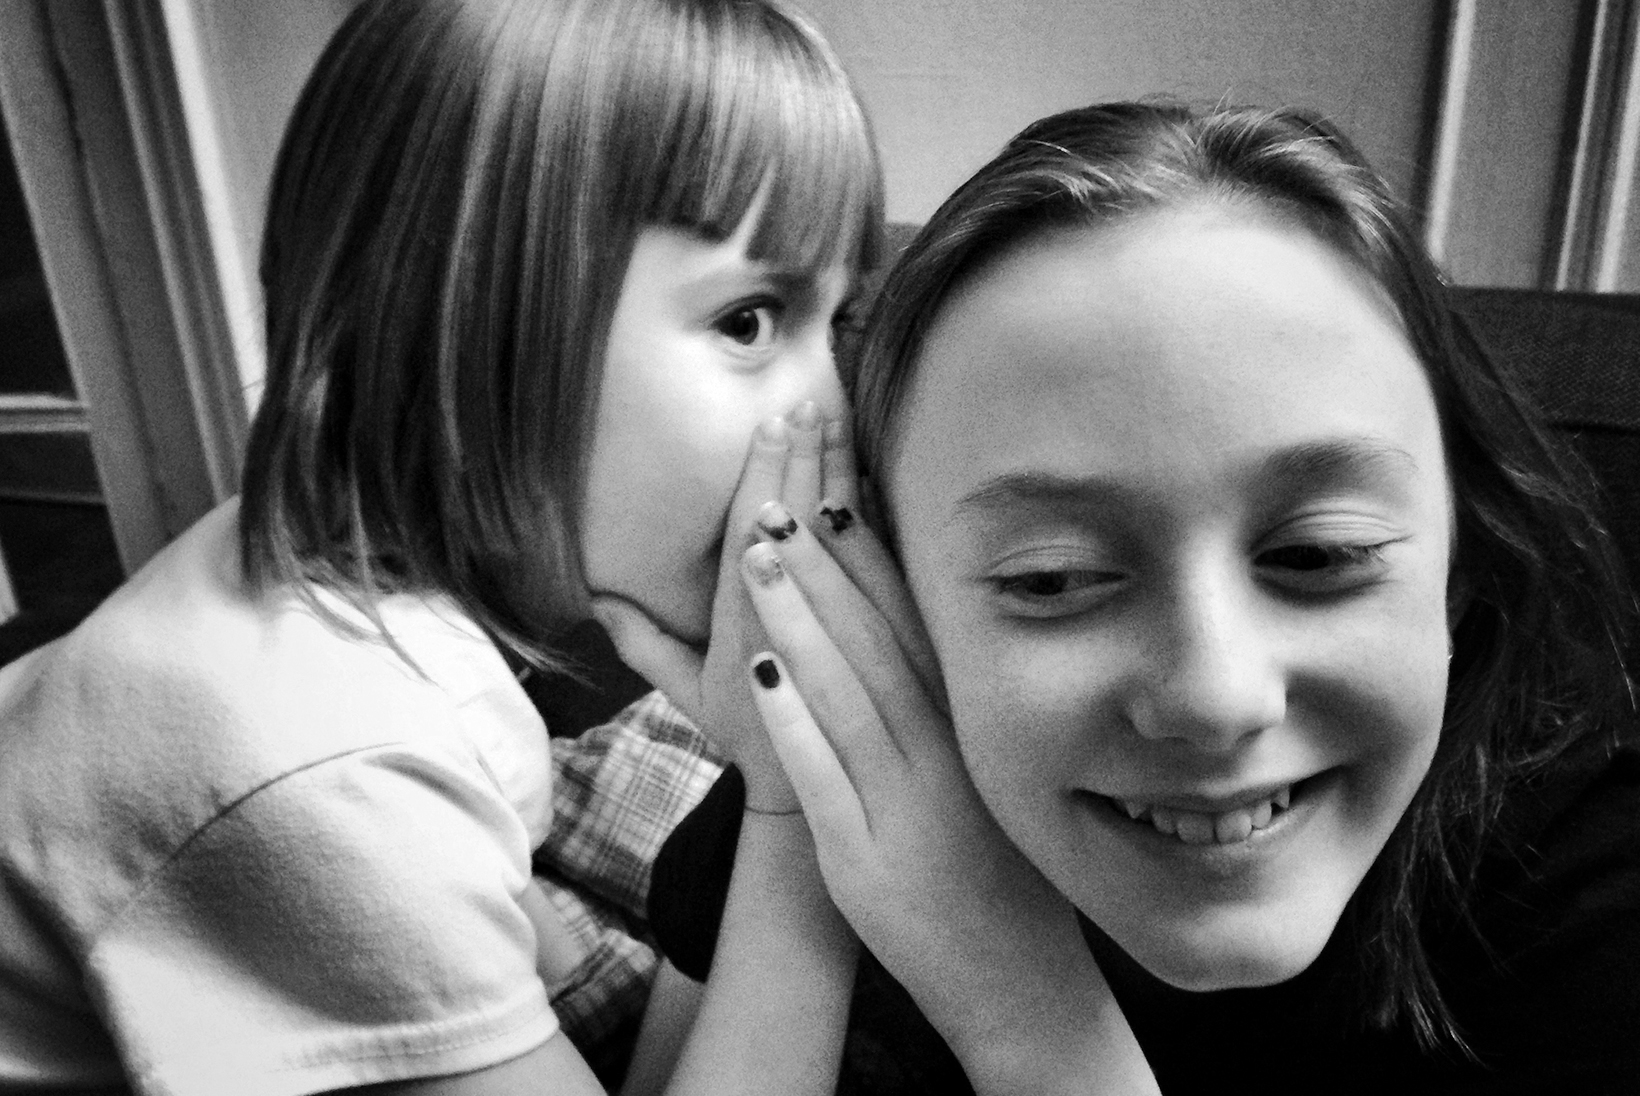 A young girl whispers in a teen girl's ear. The teen girl listens closely and smiles.